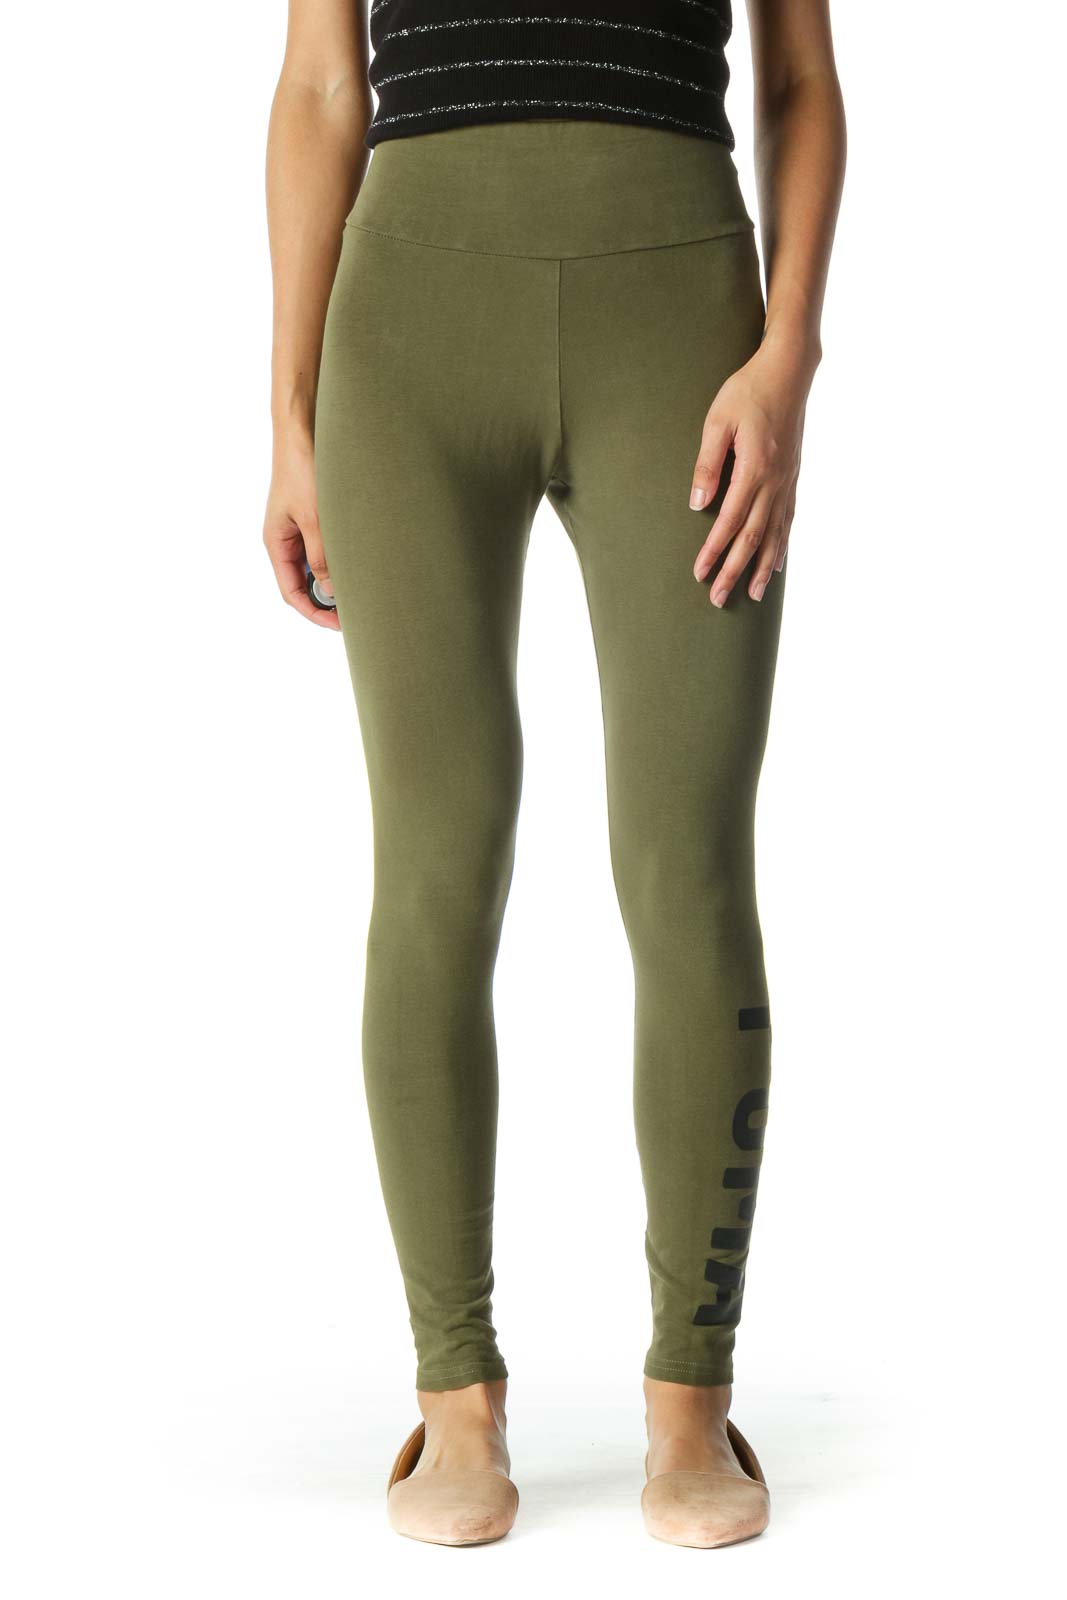 Green Logo High Waisted Leggings